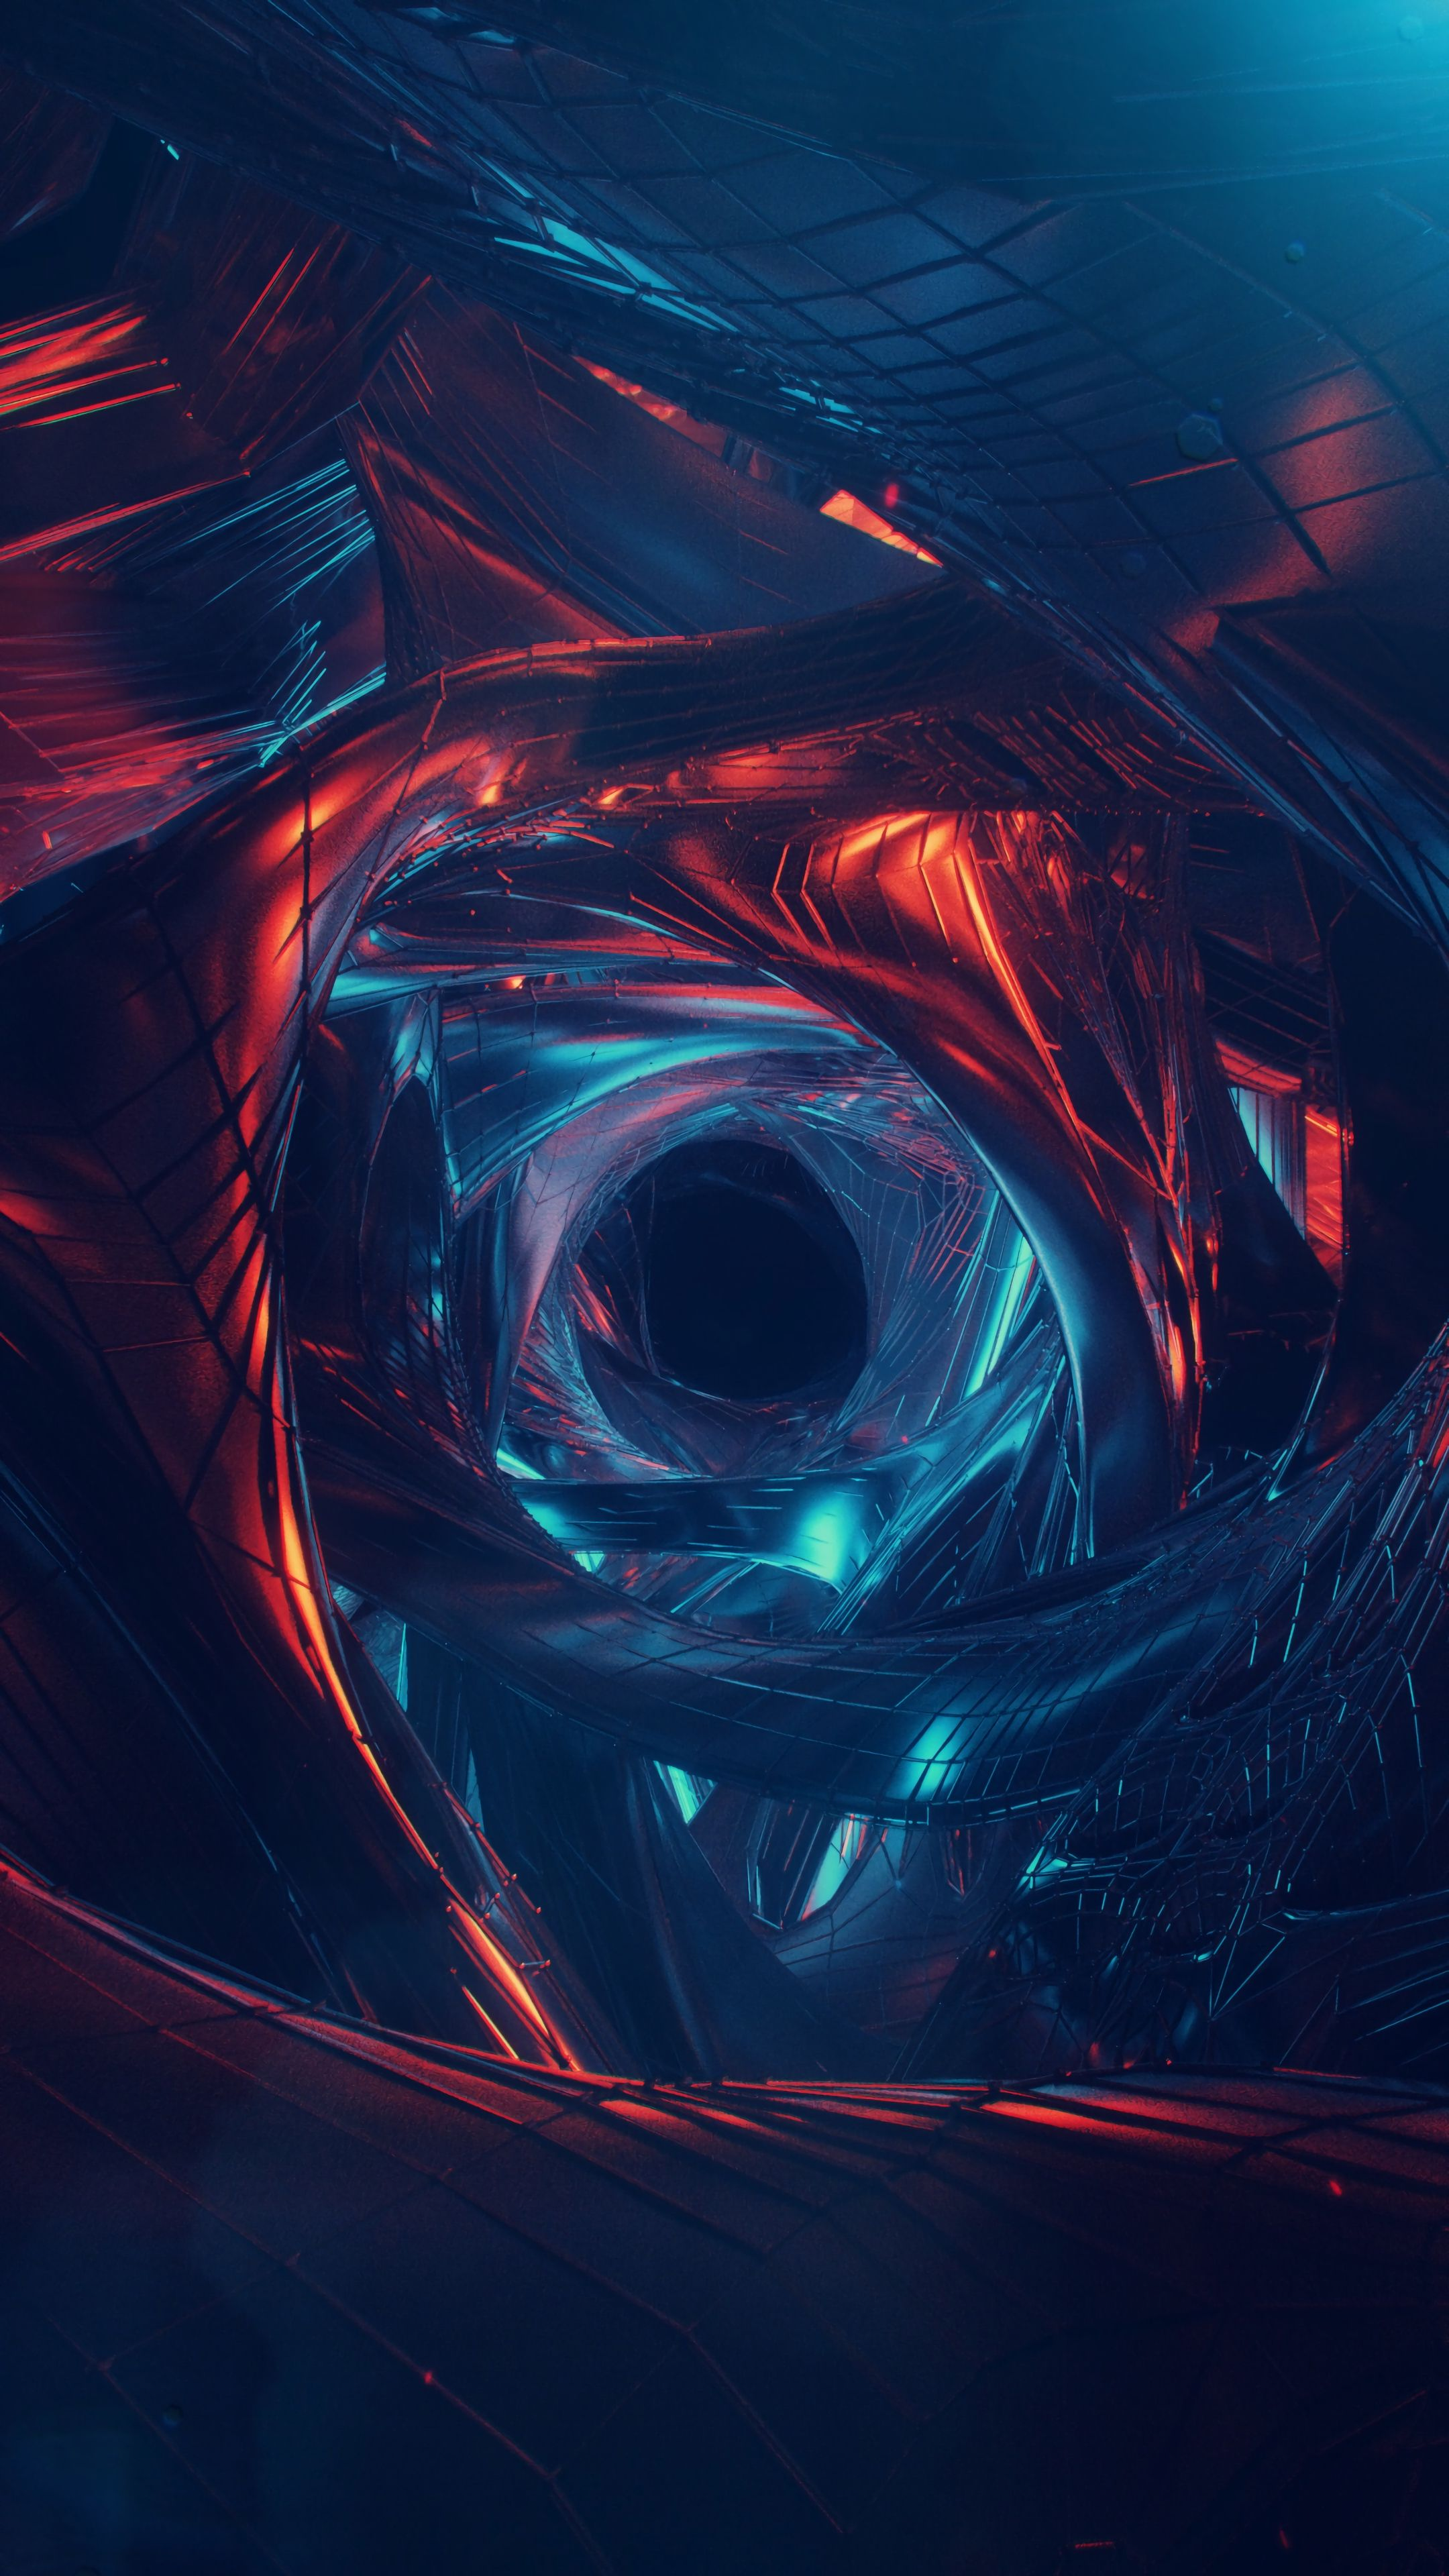 Abstract #wormhole #art #visualization #wallpapers hd 4k